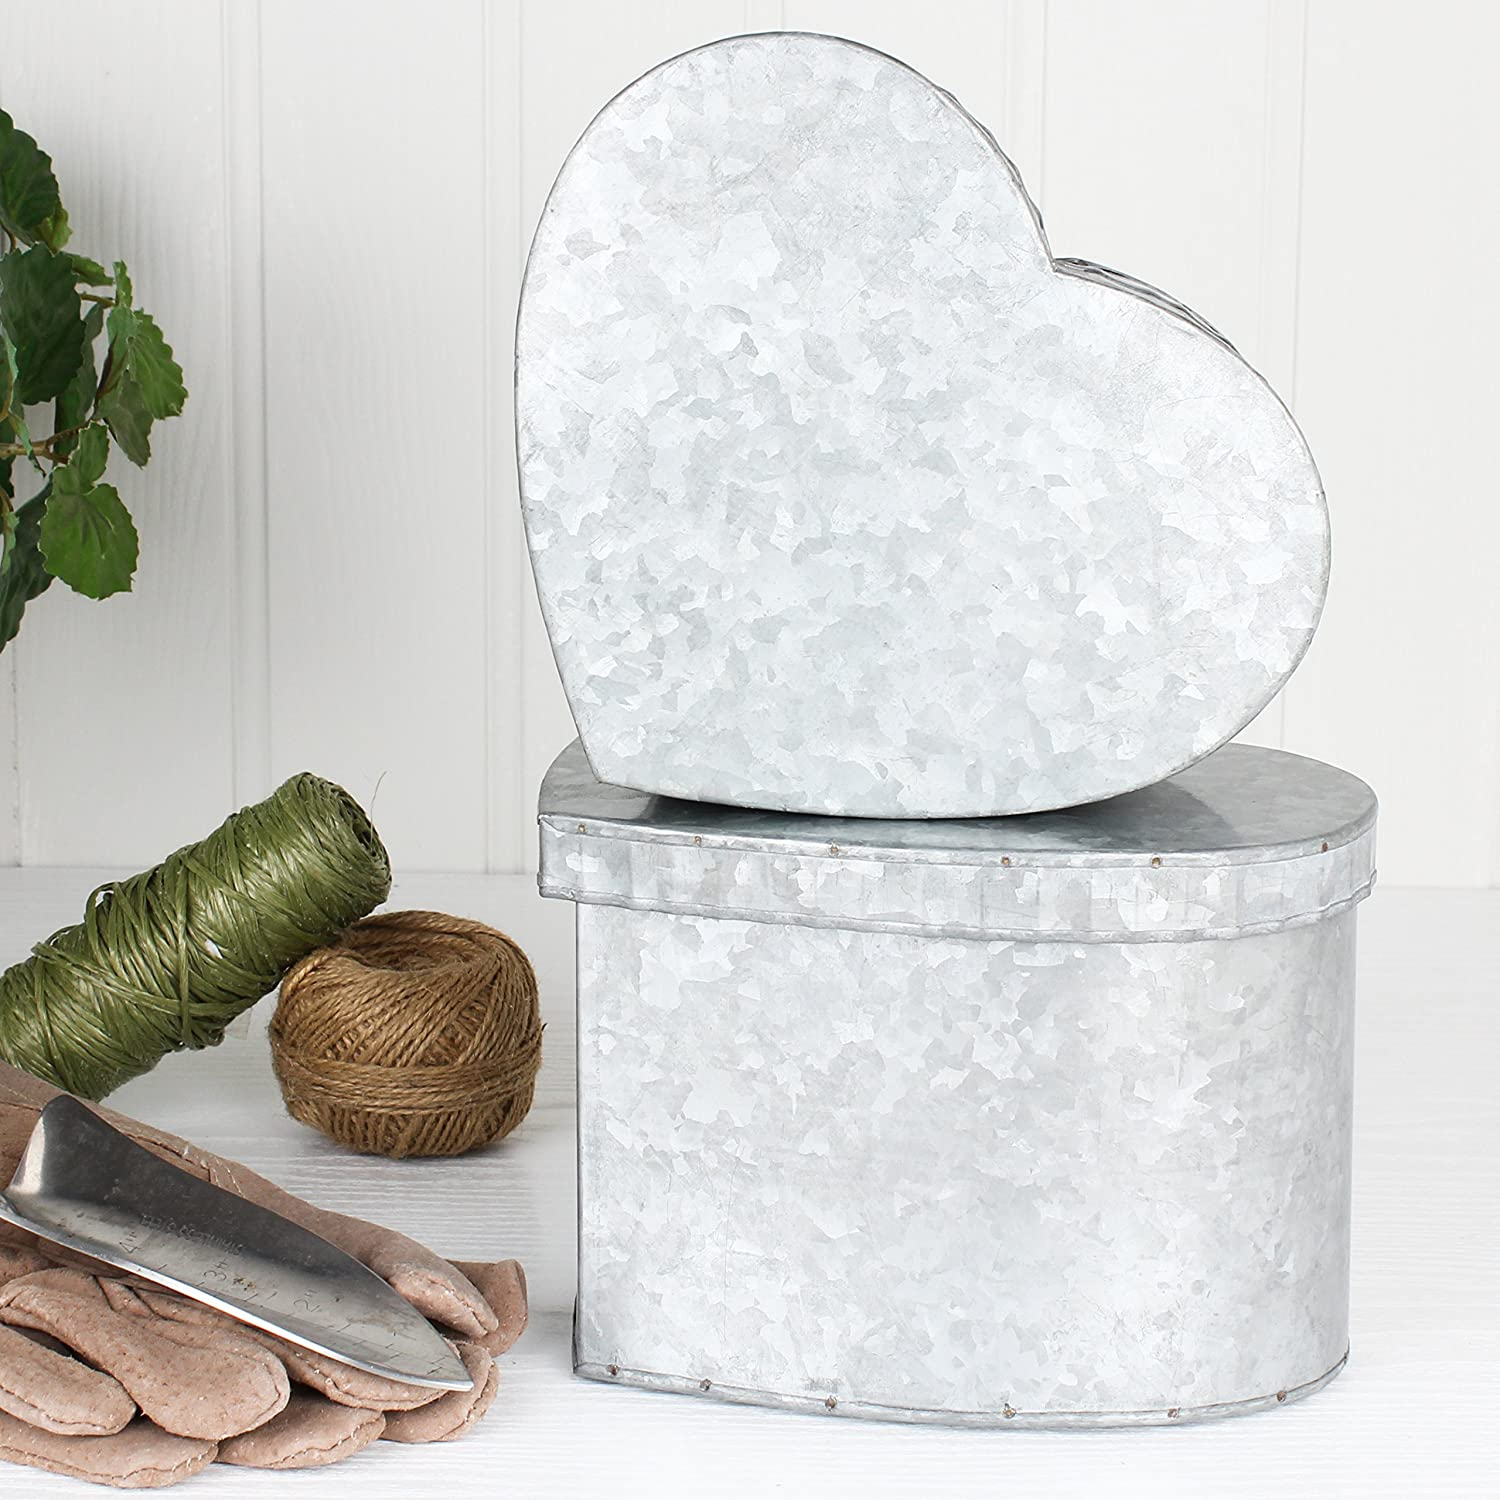 Set Of Two Zinc Heart Shaped Tins - Great gift ifea for Dads shed this Christmas! - Perfect For Storing Bulbs And Seeds - H7.5 x W20.5 x D19.5cm Dibor